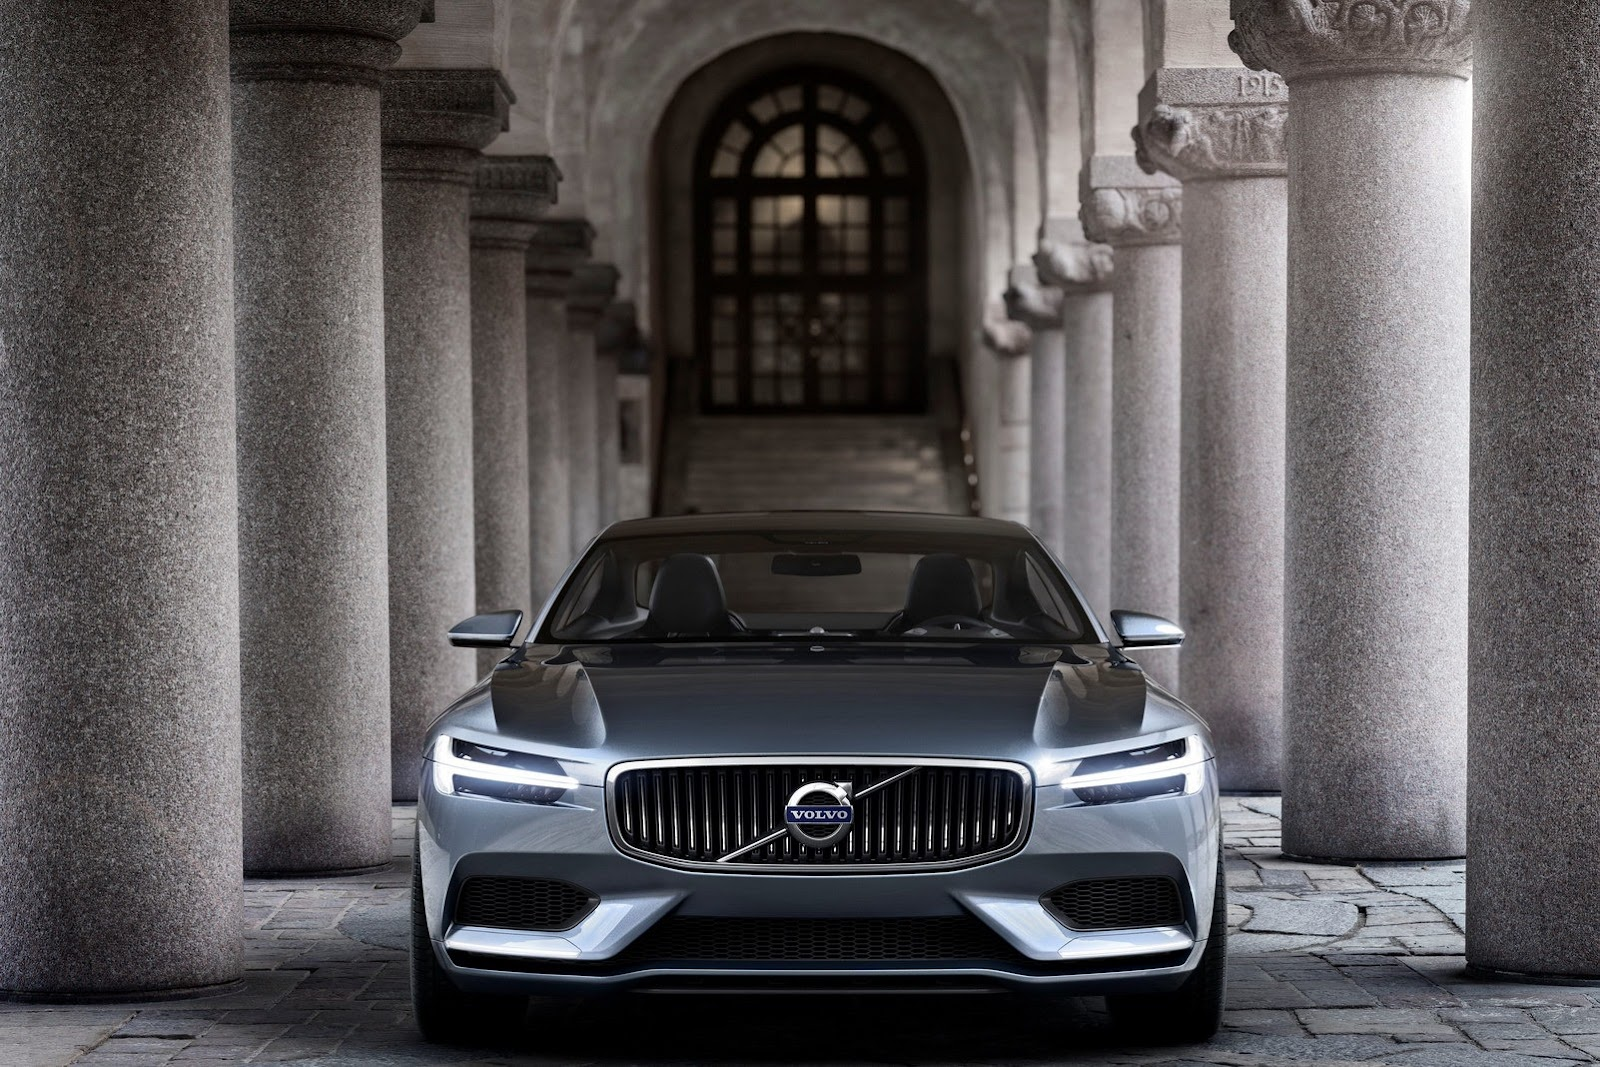 Volvo-Concept-Coupe-17%25255B2%25255D.jpg